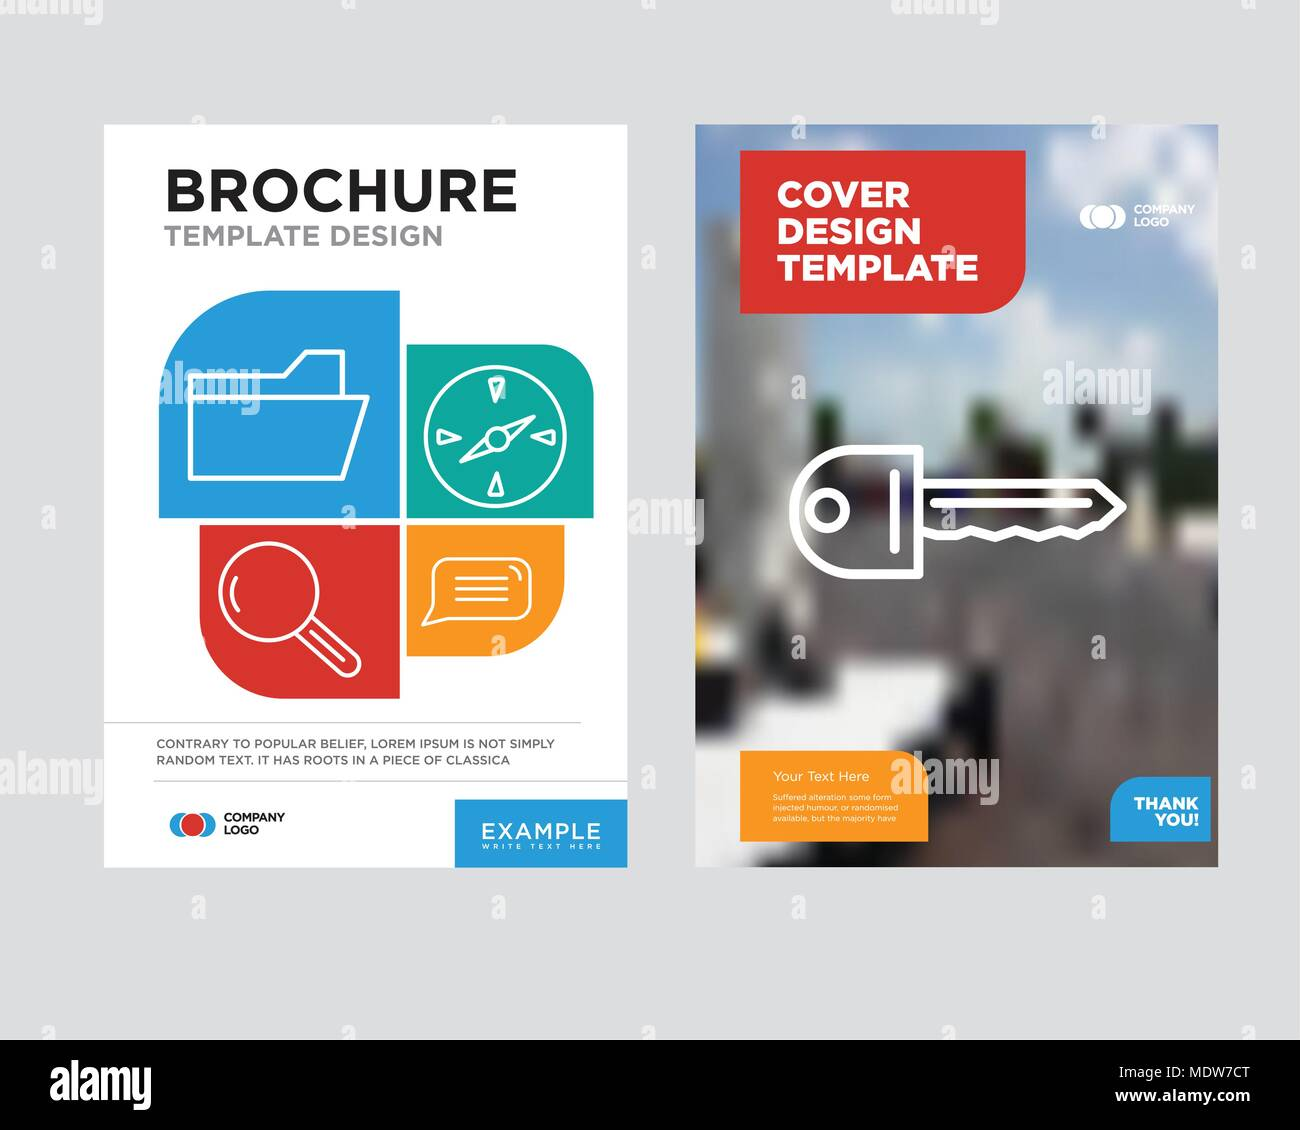 Key brochure flyer design template with abstract photo